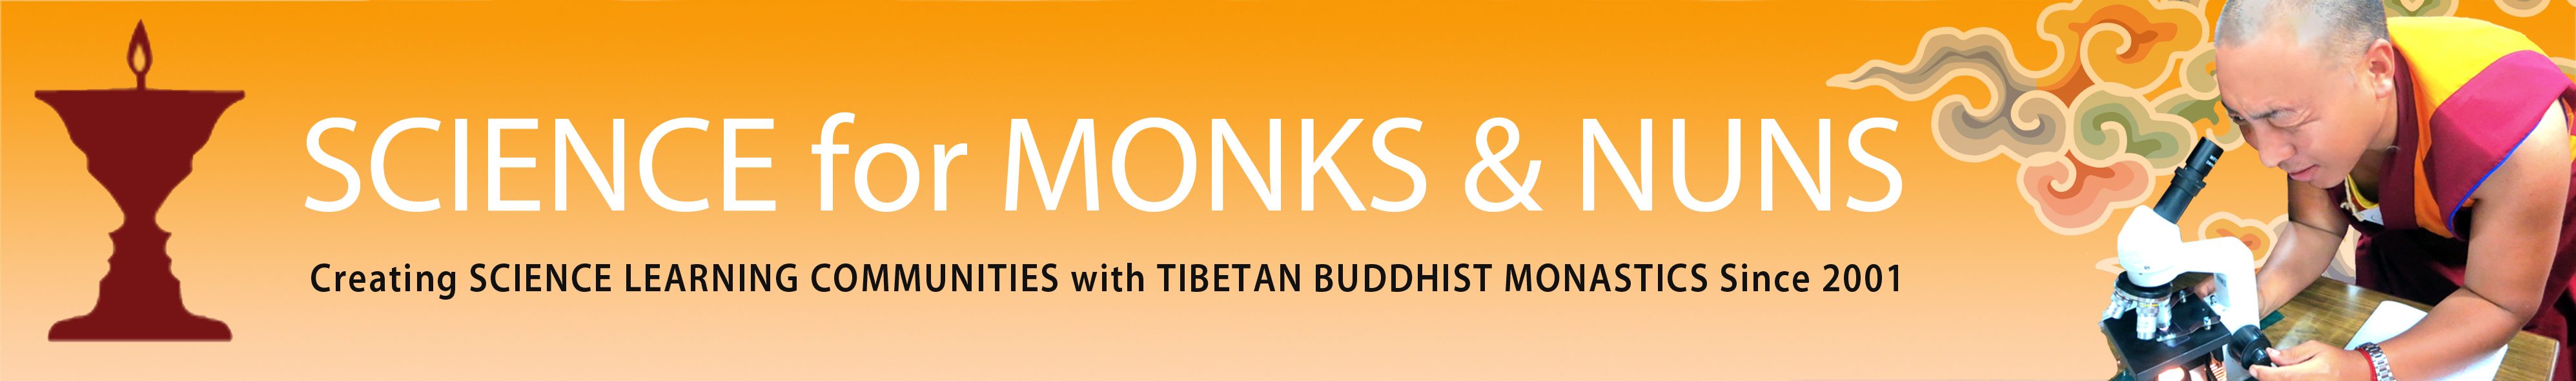 Science for Monks & Nuns